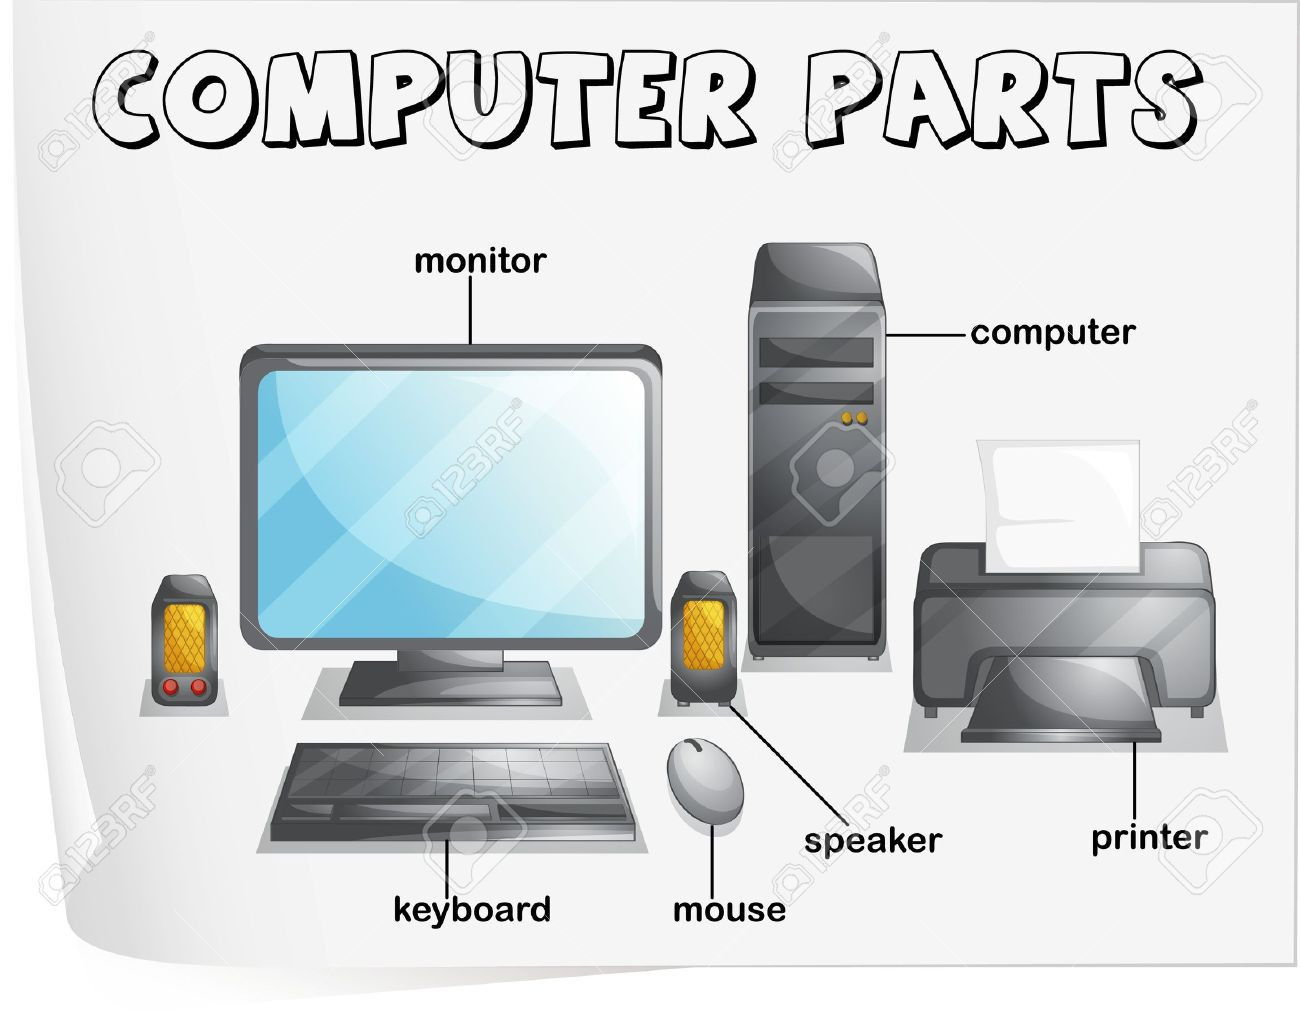 Printer clipart computer component. Illustration of parts worksheet